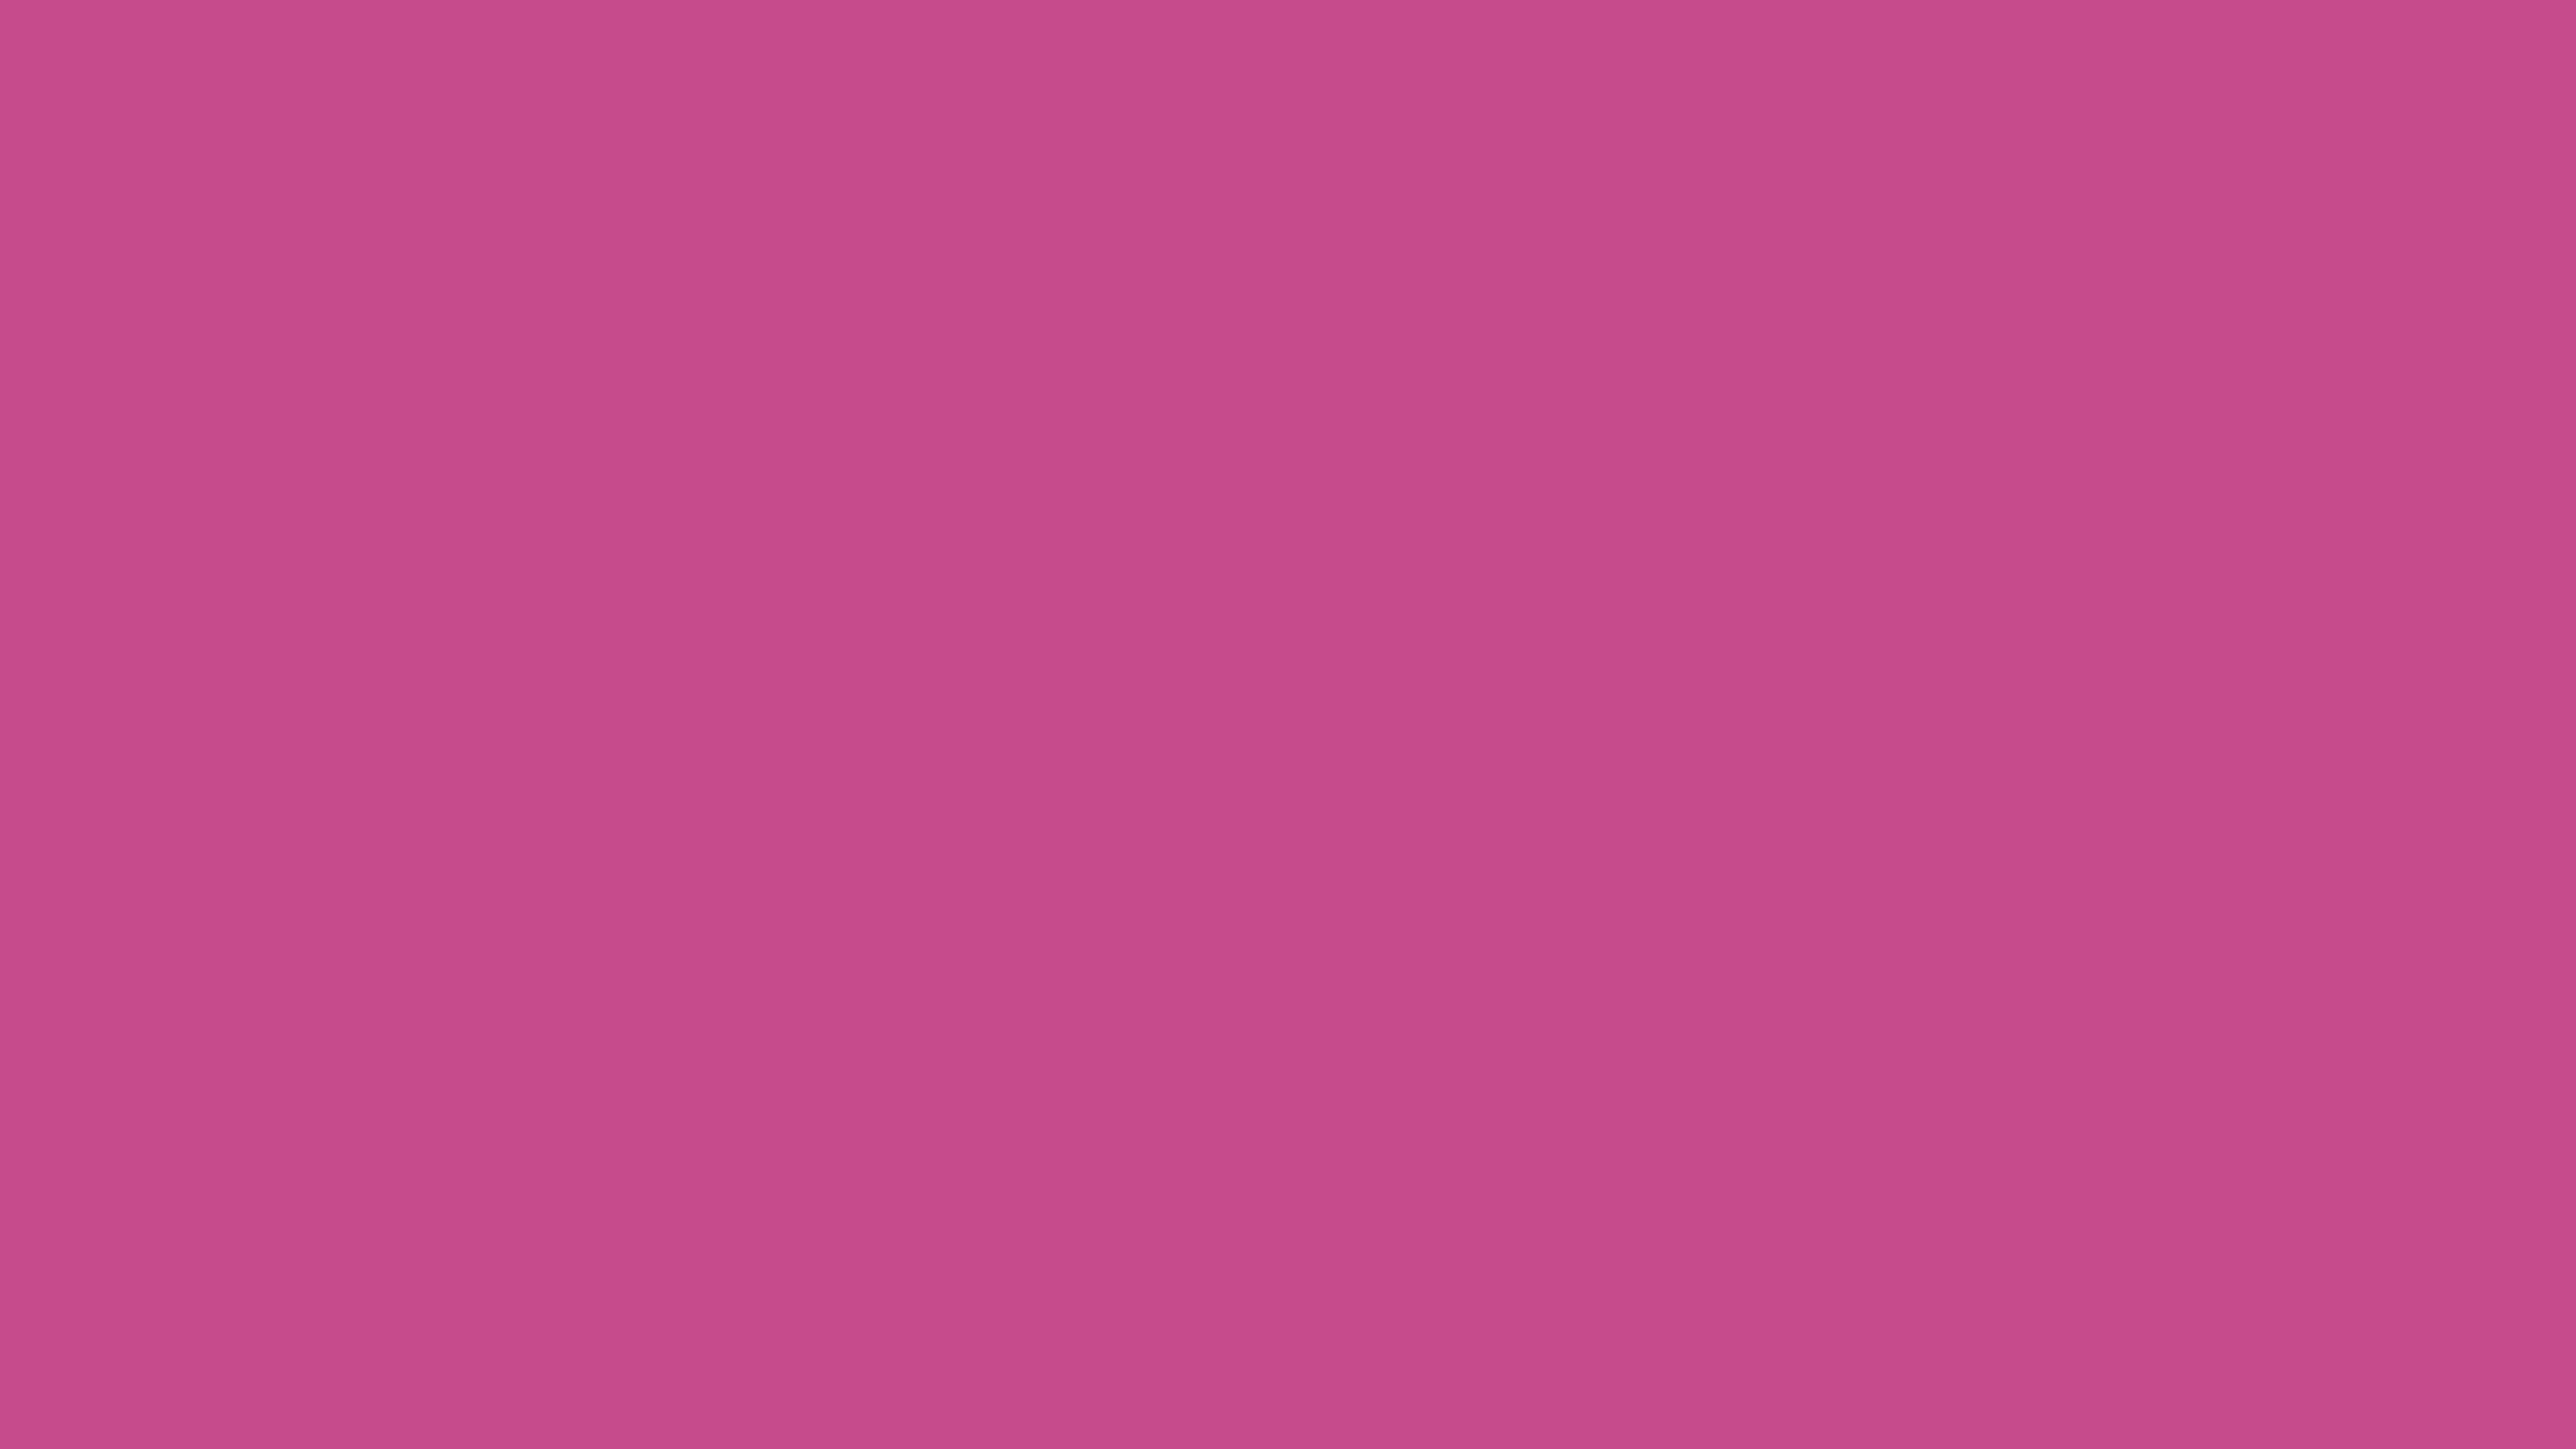 3840x2160 Mulberry Solid Color Background